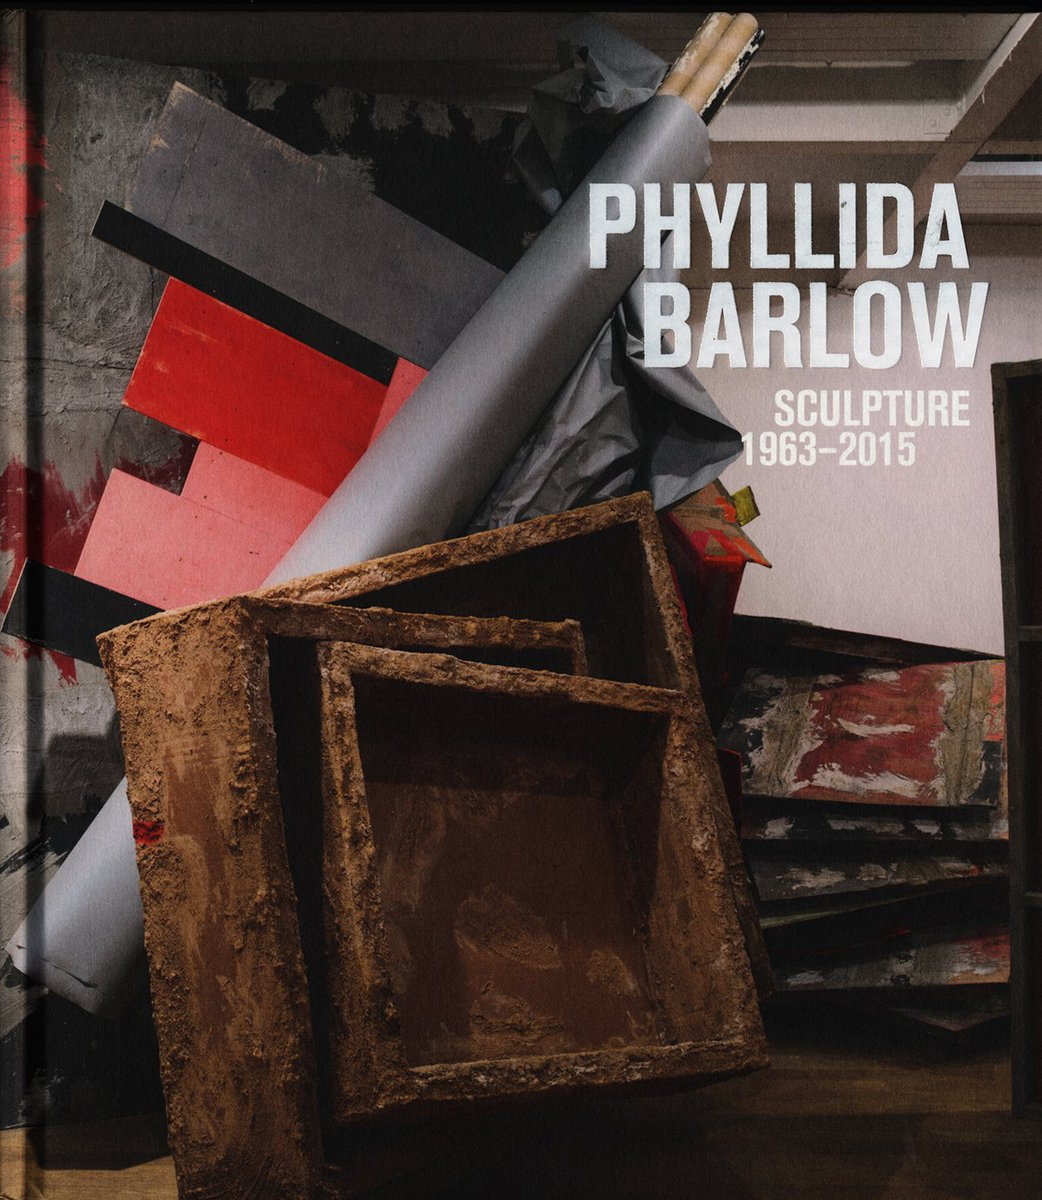 DAY7 of our 12 Books of Christmas comp! Flw & RT before 5pm to win Phyllida Barlow's beautiful Sculpture 1963-2015 https://t.co/64odfyJ3qb